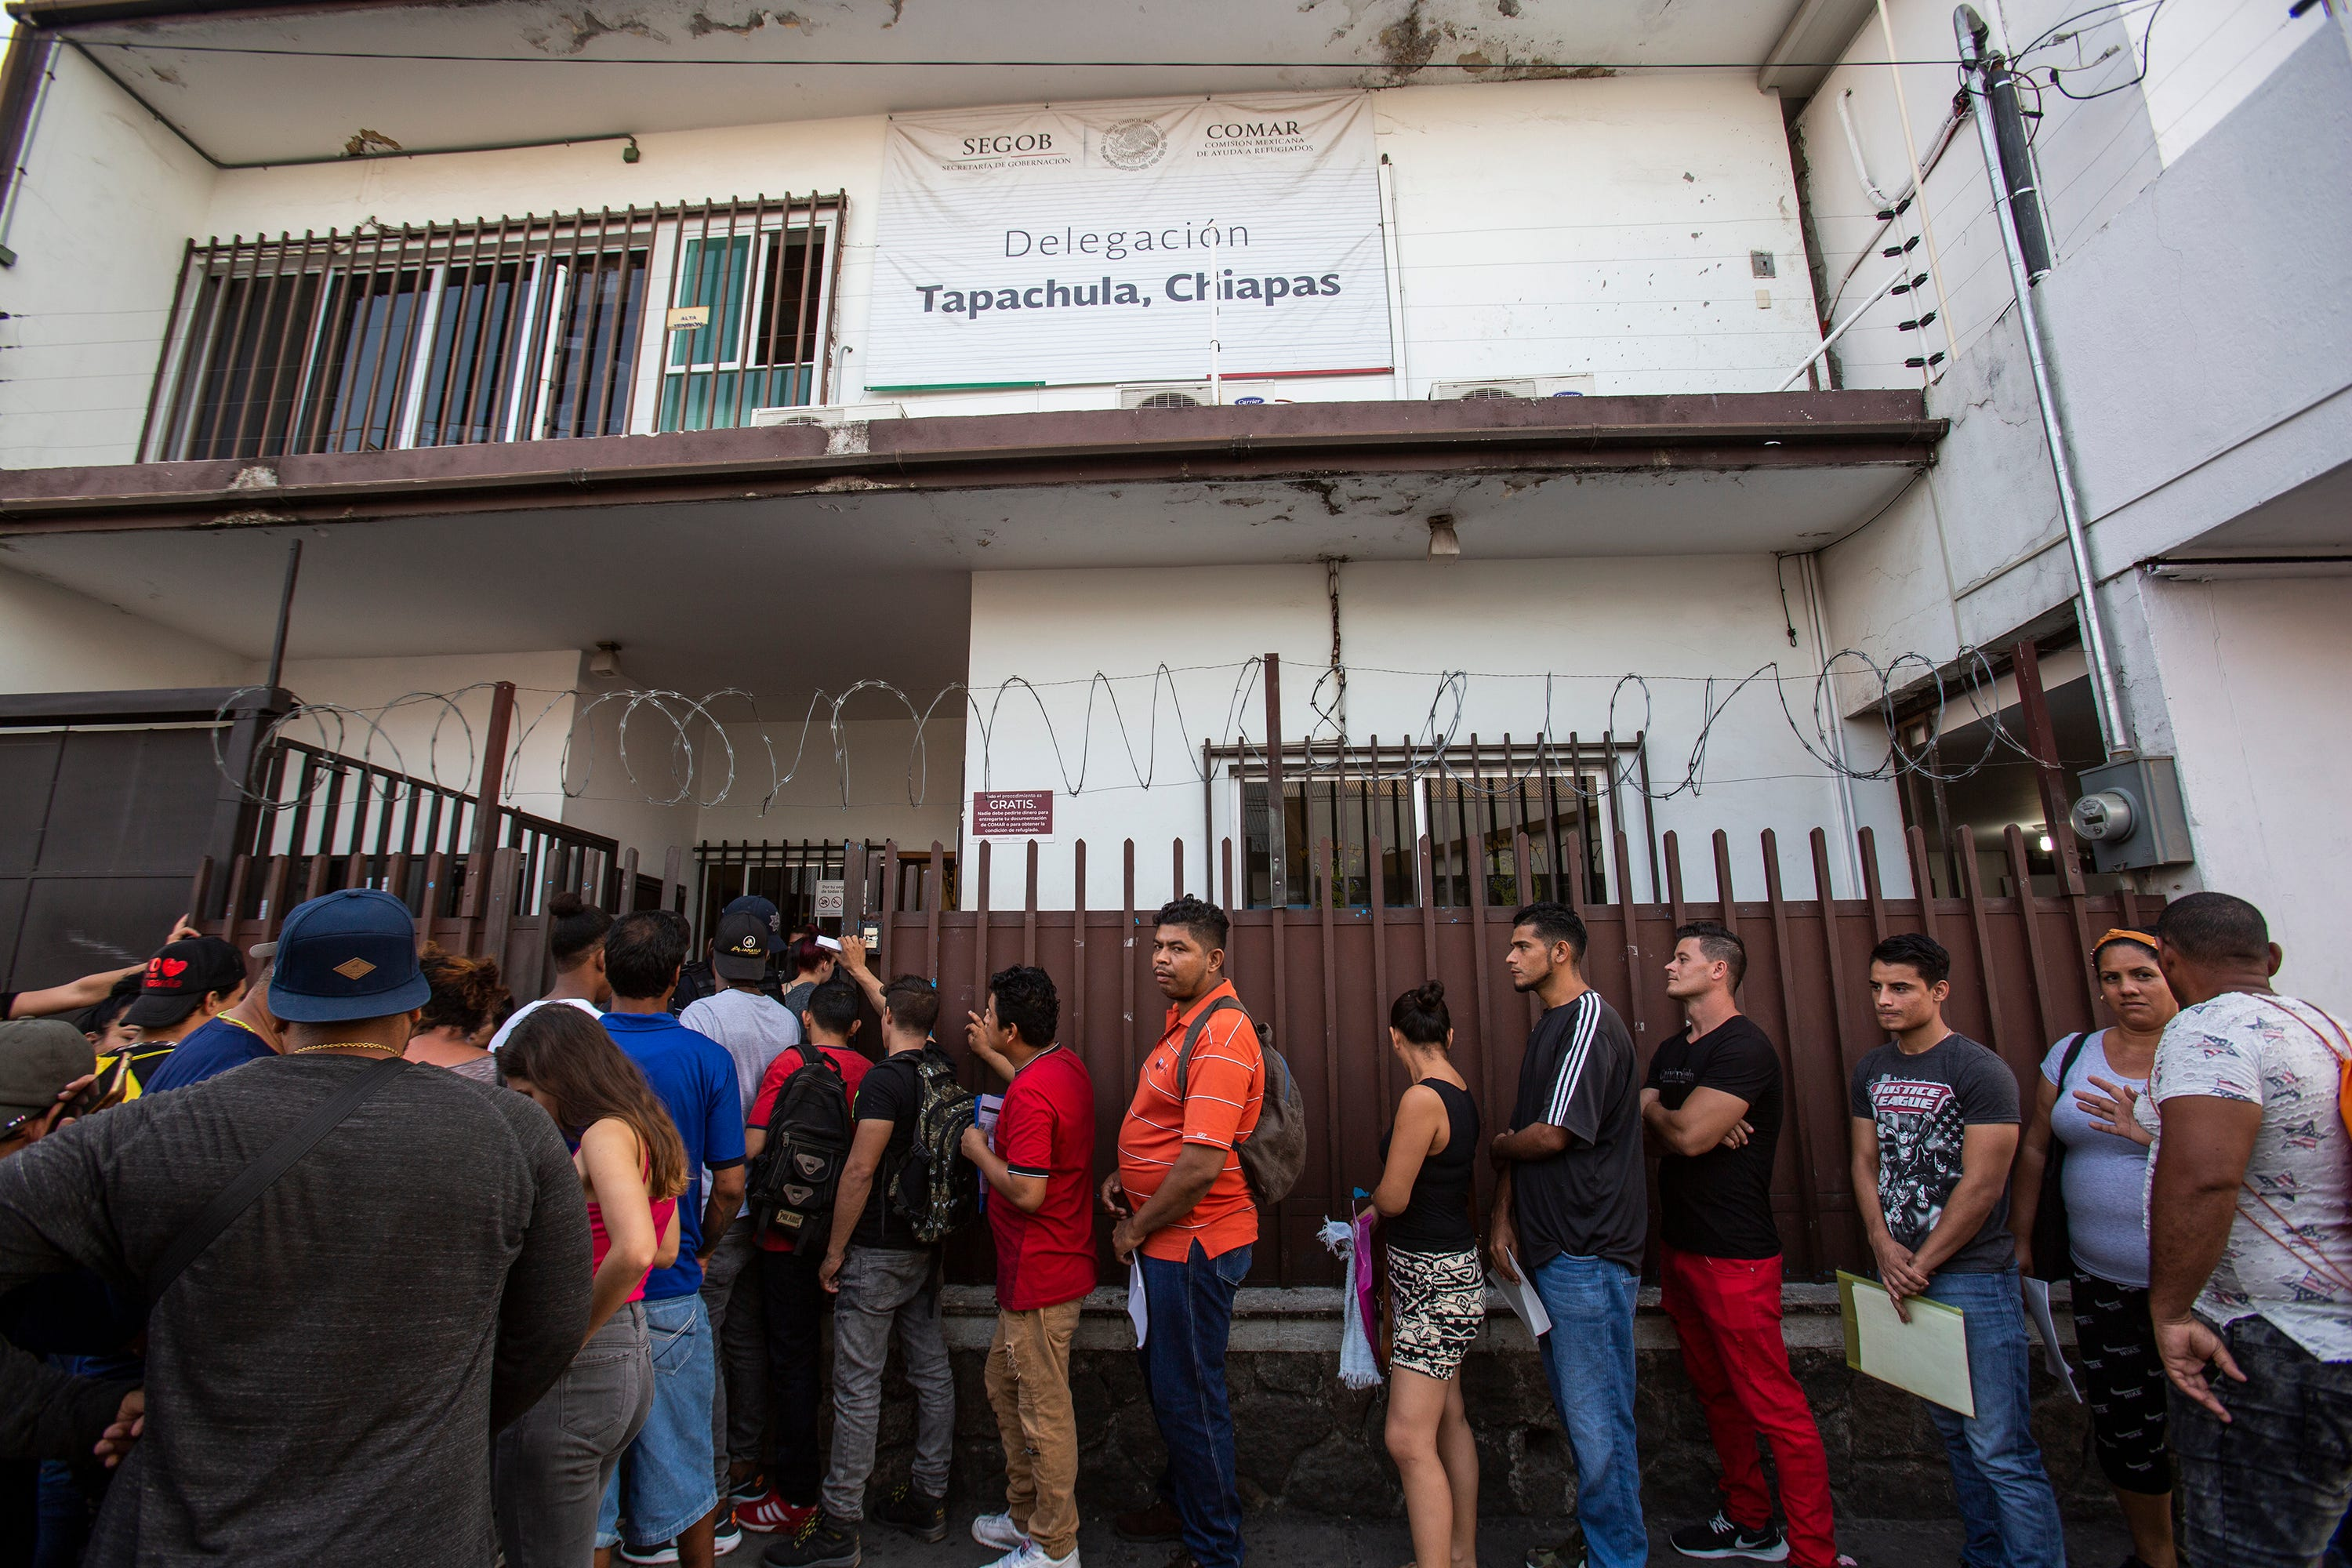 Migrants from diverse nations line up for interviews with the Mexico's commission for refugees, known as COMAR, in Tapachula, Mexico, in late February 2020. Many of the immigrants were seeking refuge in Mexico in order to safely continue their trek north towards the U.S.-Mexico border.